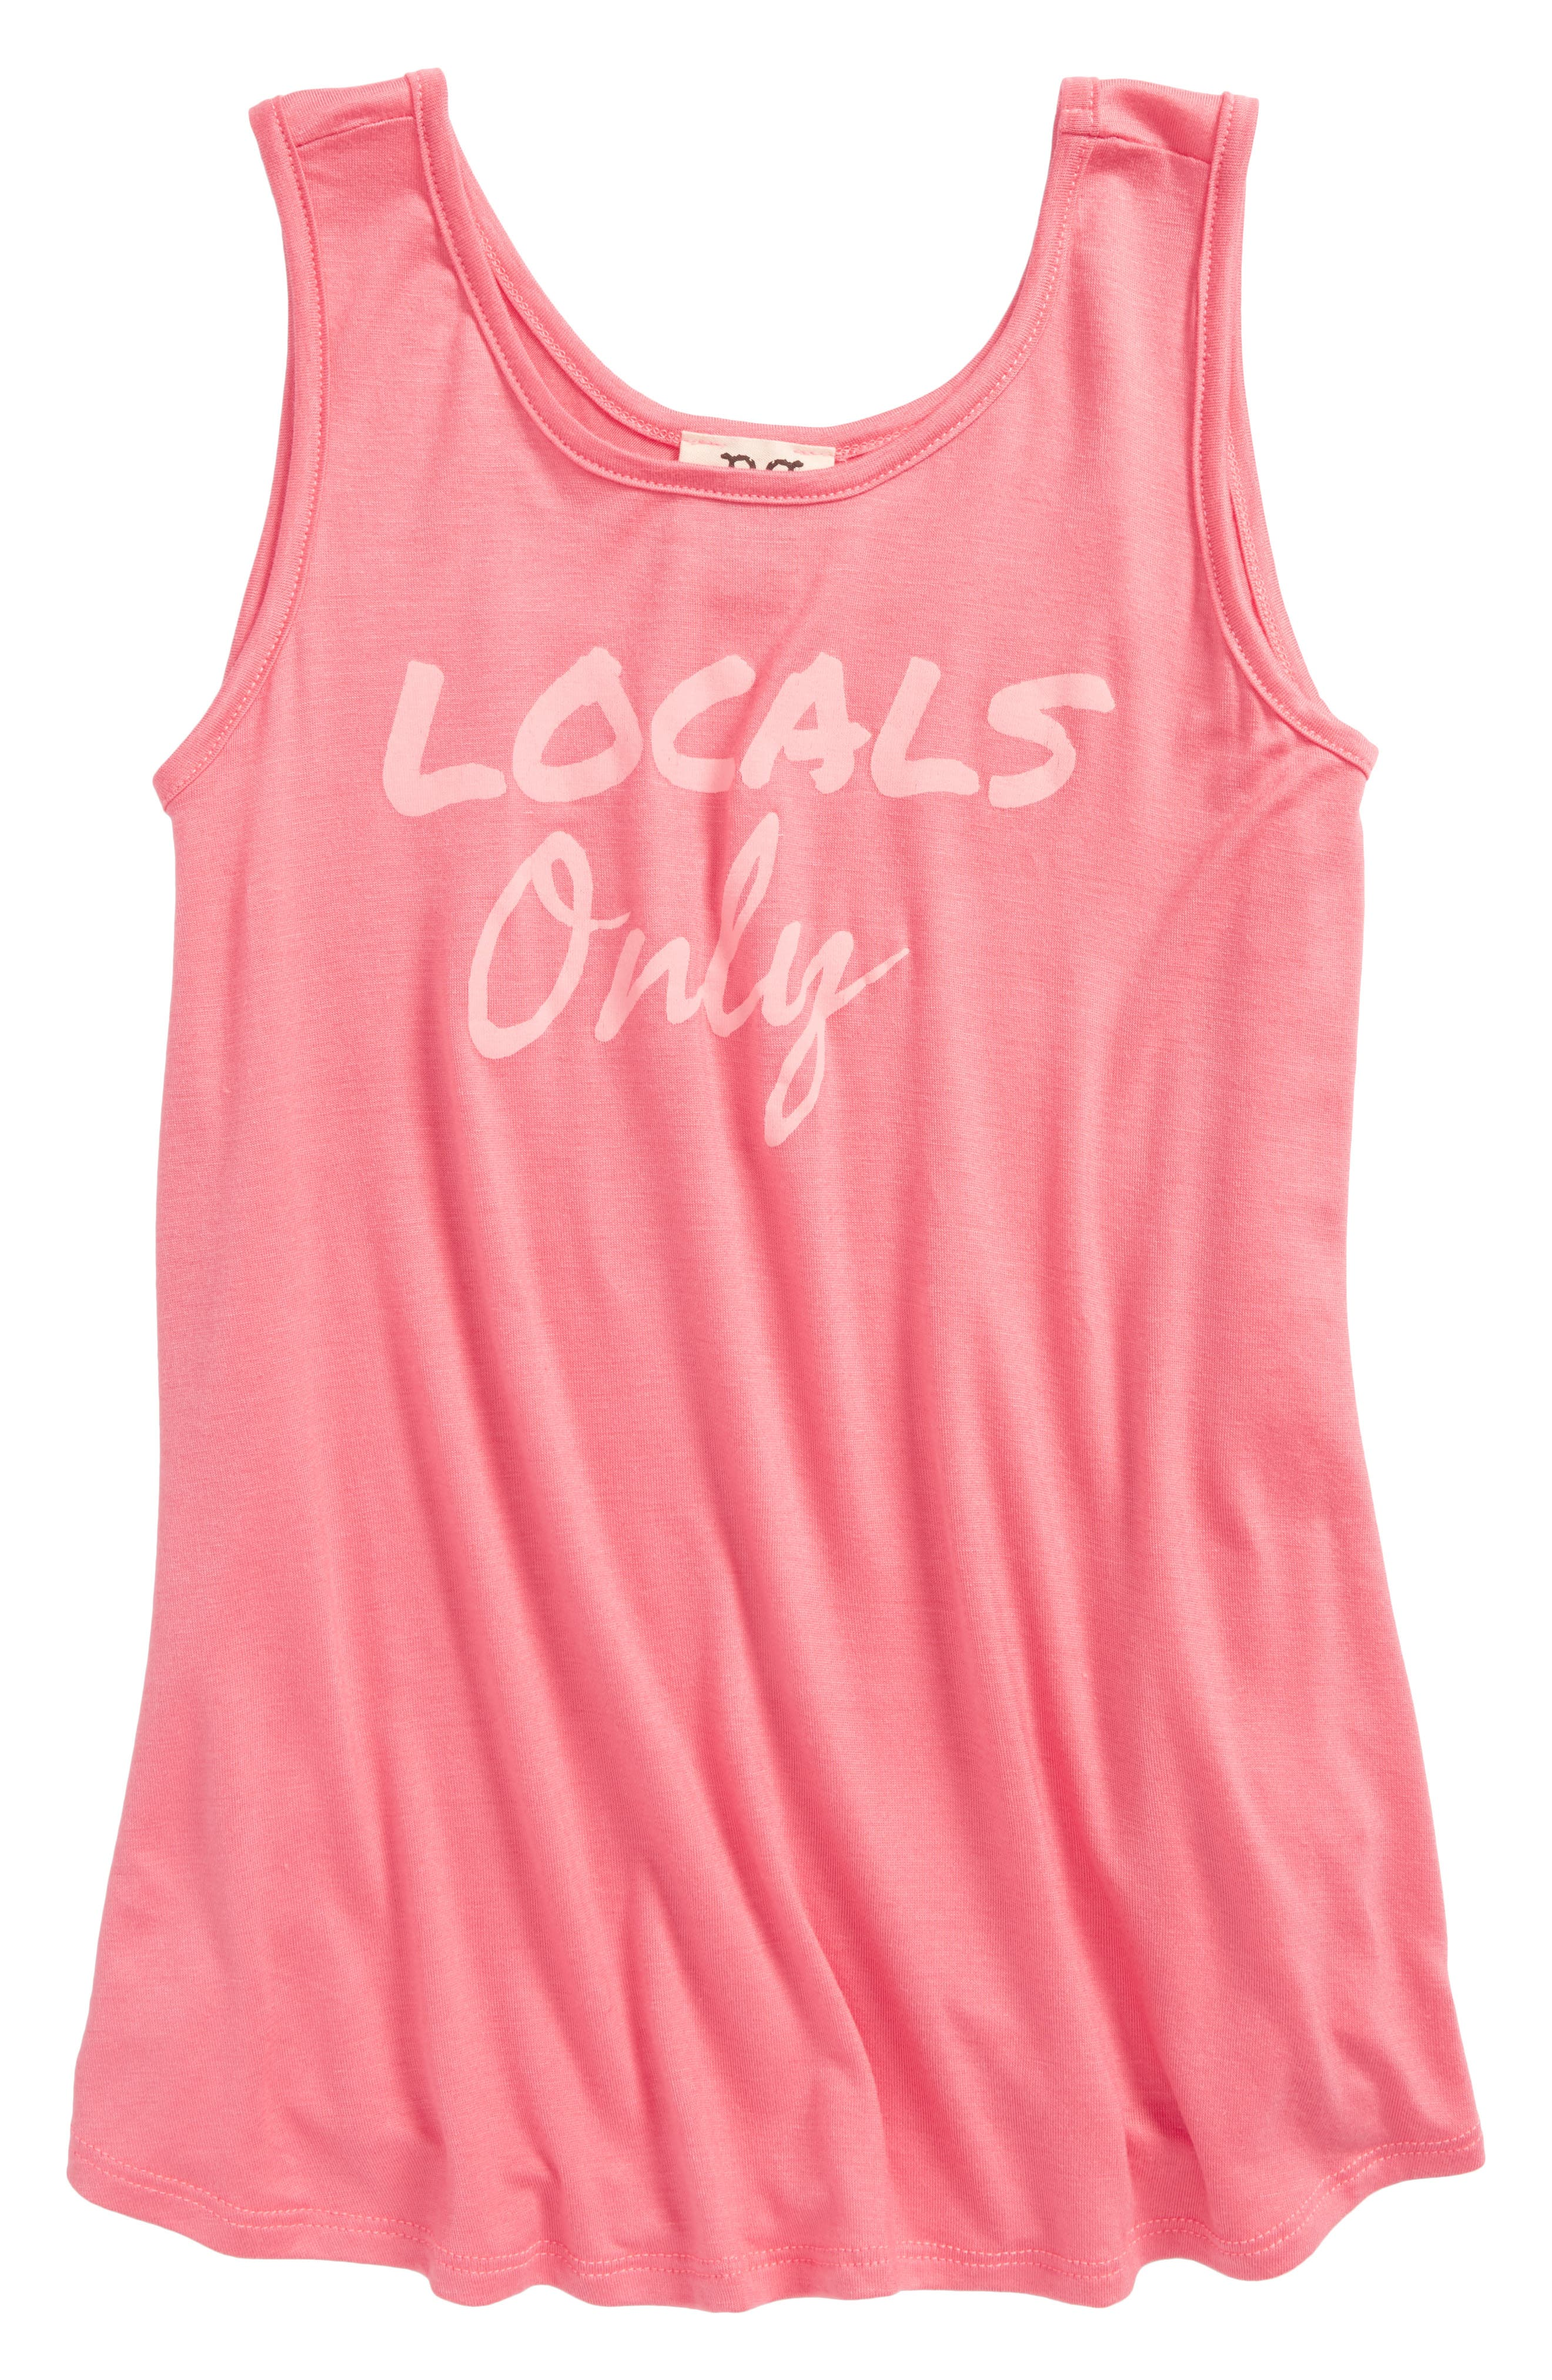 Locals Only Swing Tank,                             Main thumbnail 1, color,                             Coral